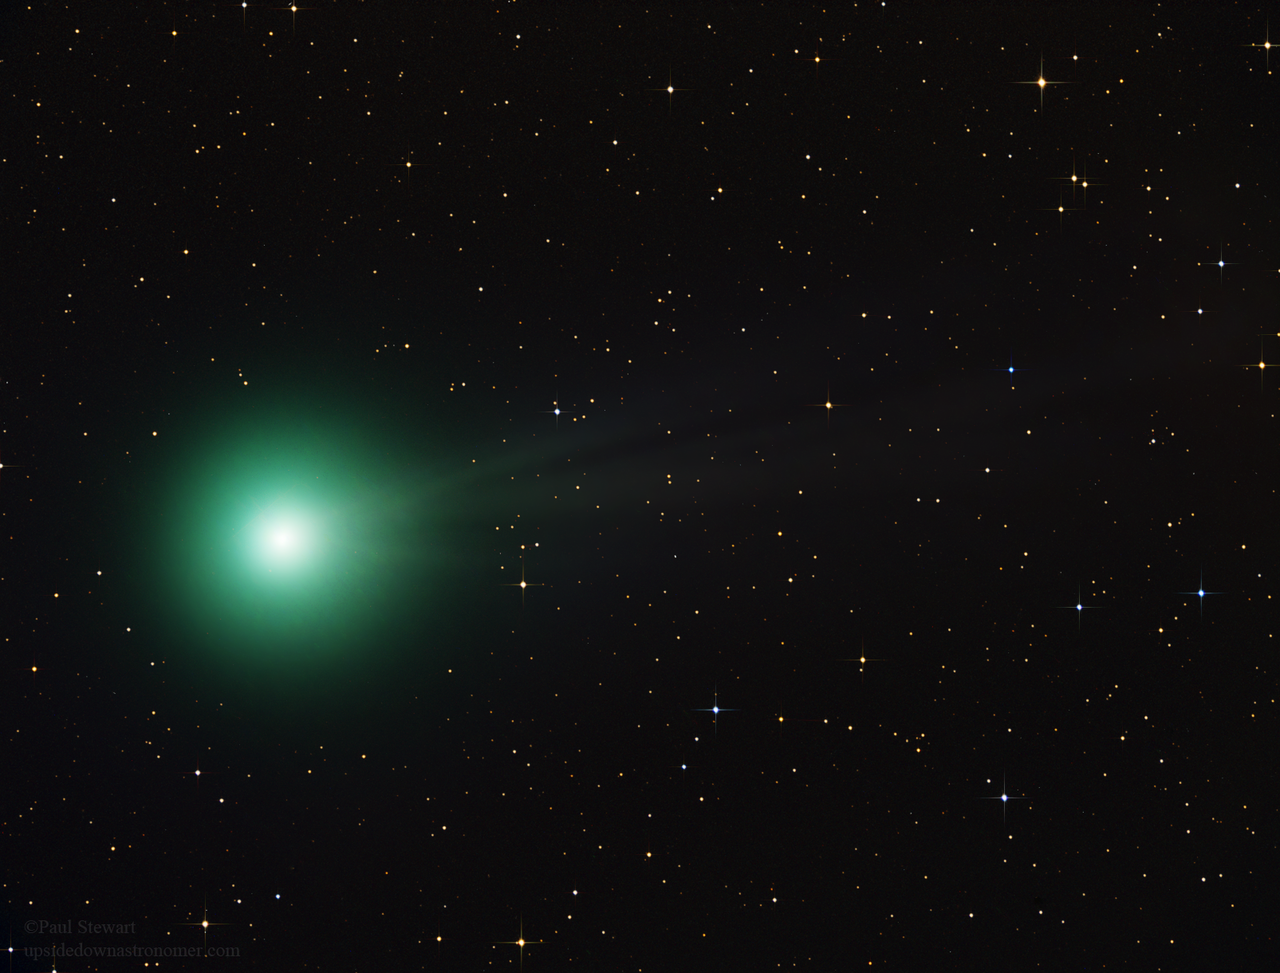 Comet lovejoy green